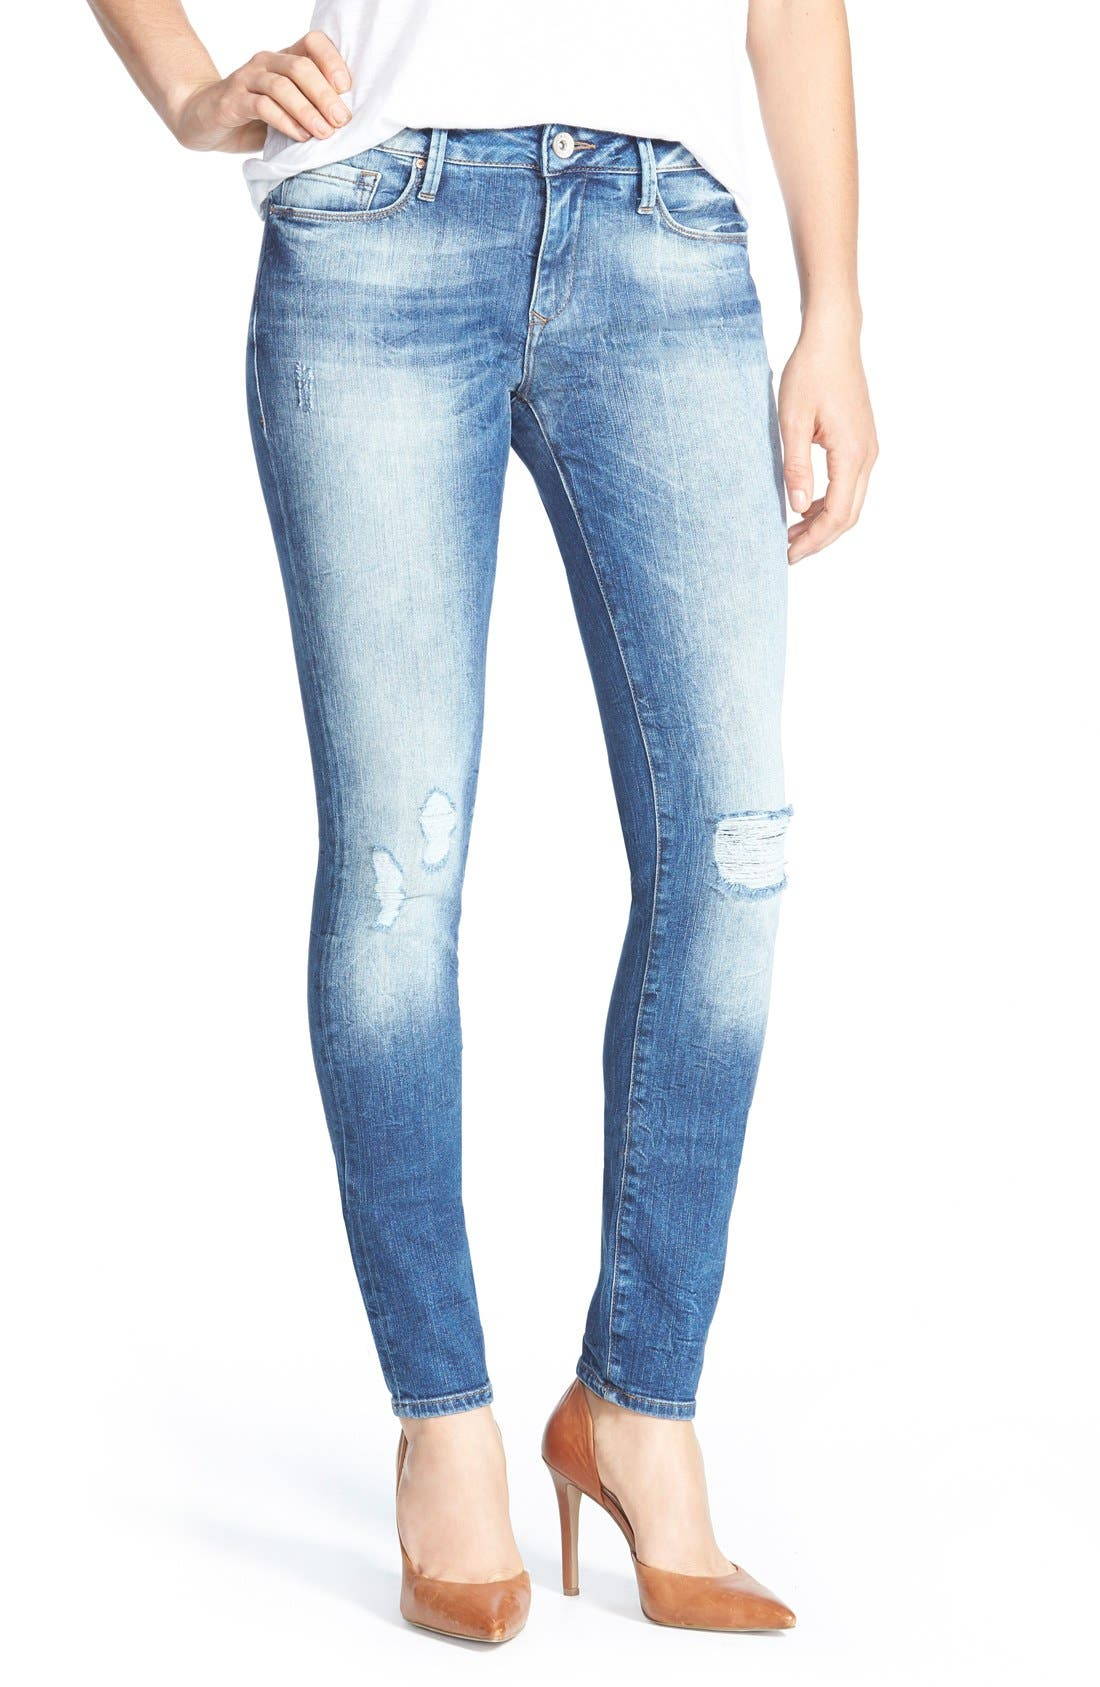 Alternate Image 1 Selected - Mavi Jeans 'Alexa' Distressed Stretch Skinny Jeans (Mid Patched Vintage)